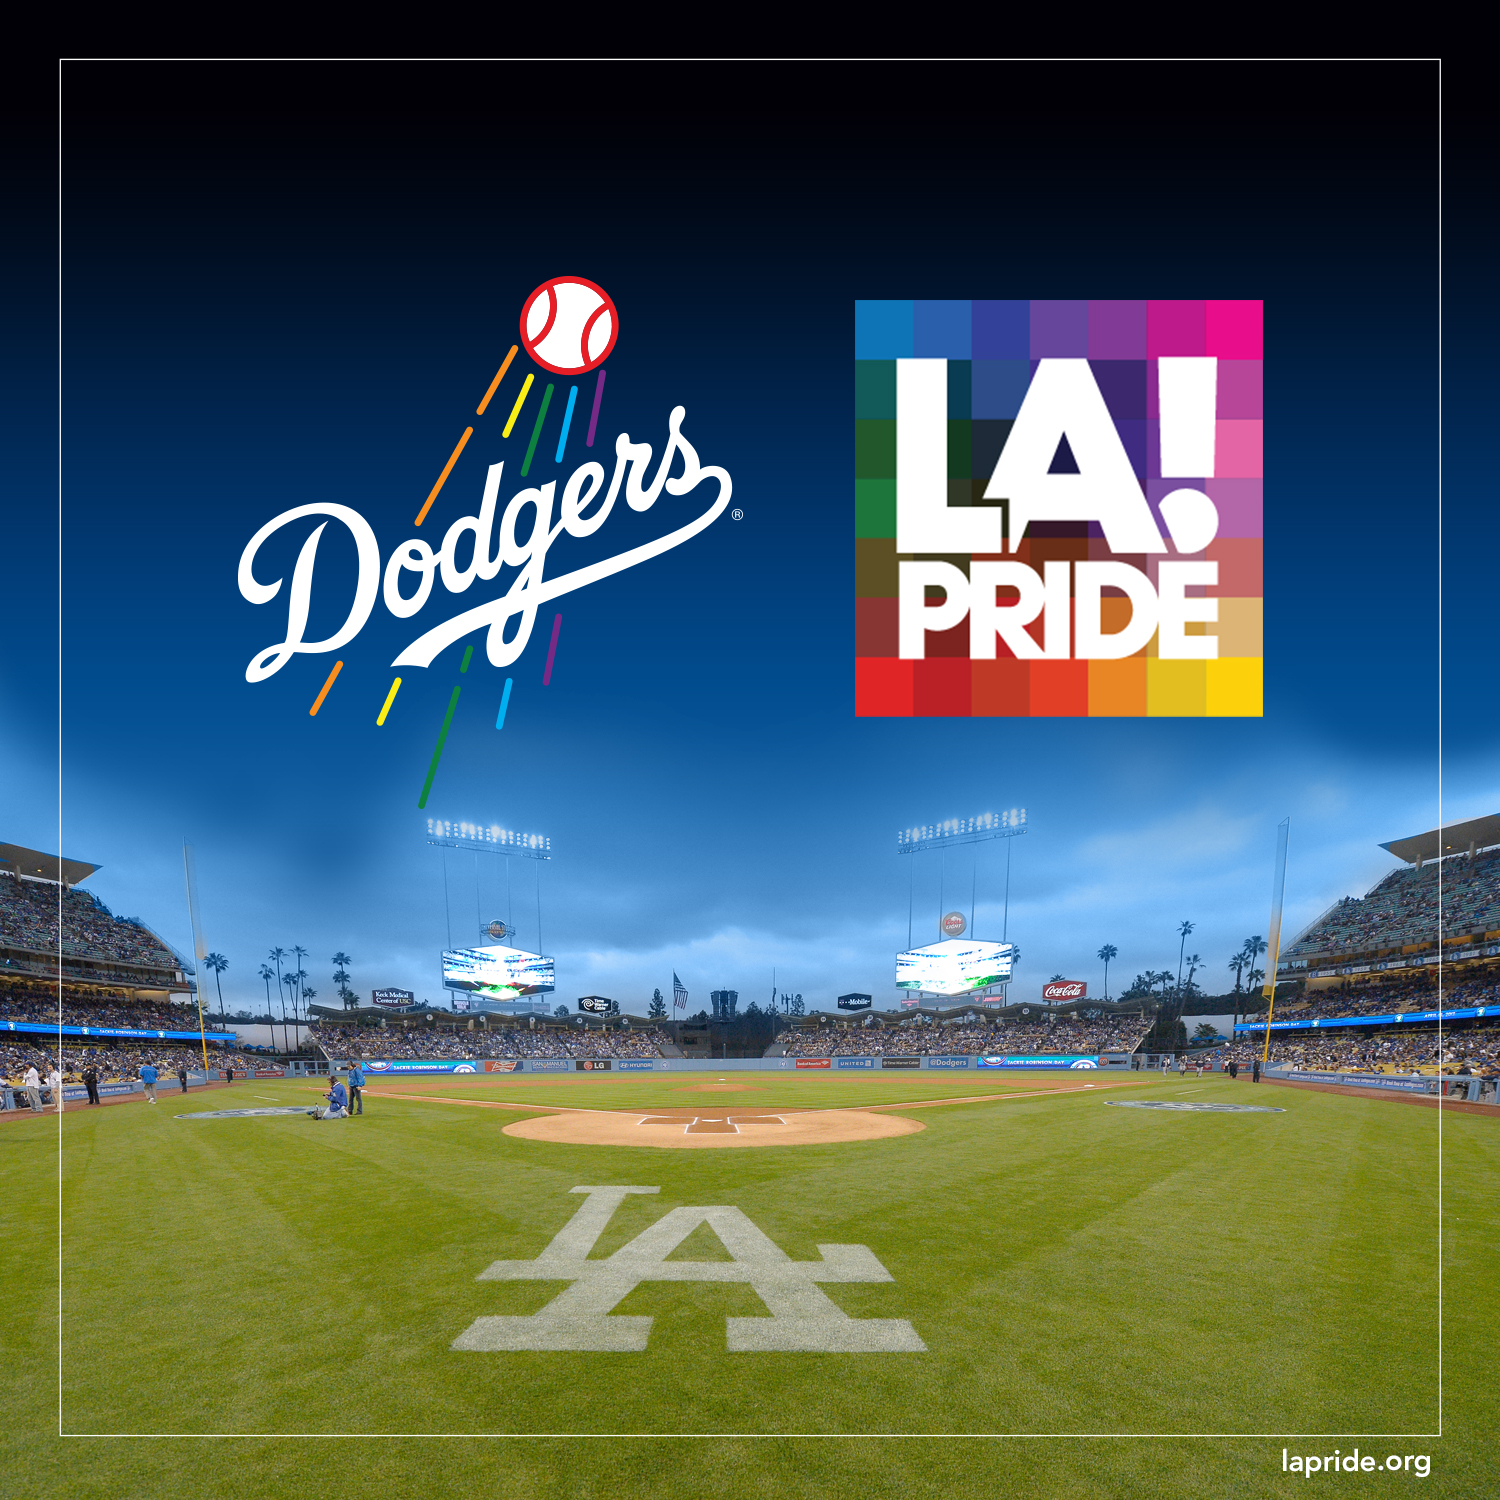 LGBT night Dodgers stadium, LA pride event, california